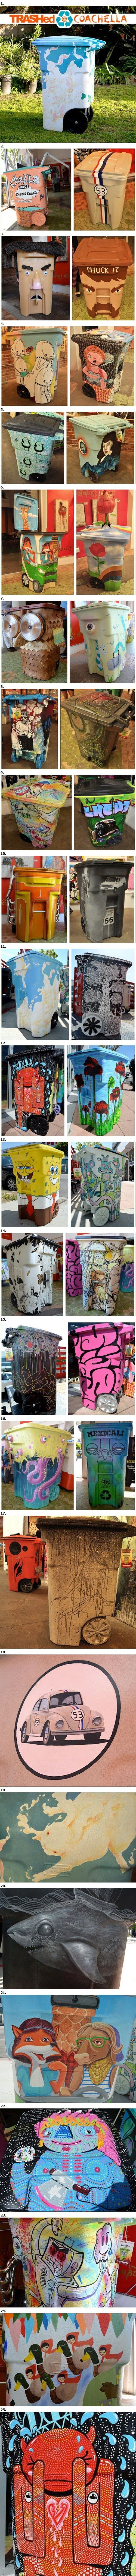 Designer trash cans and recycling bins| Trashed Coachella and miami recycles